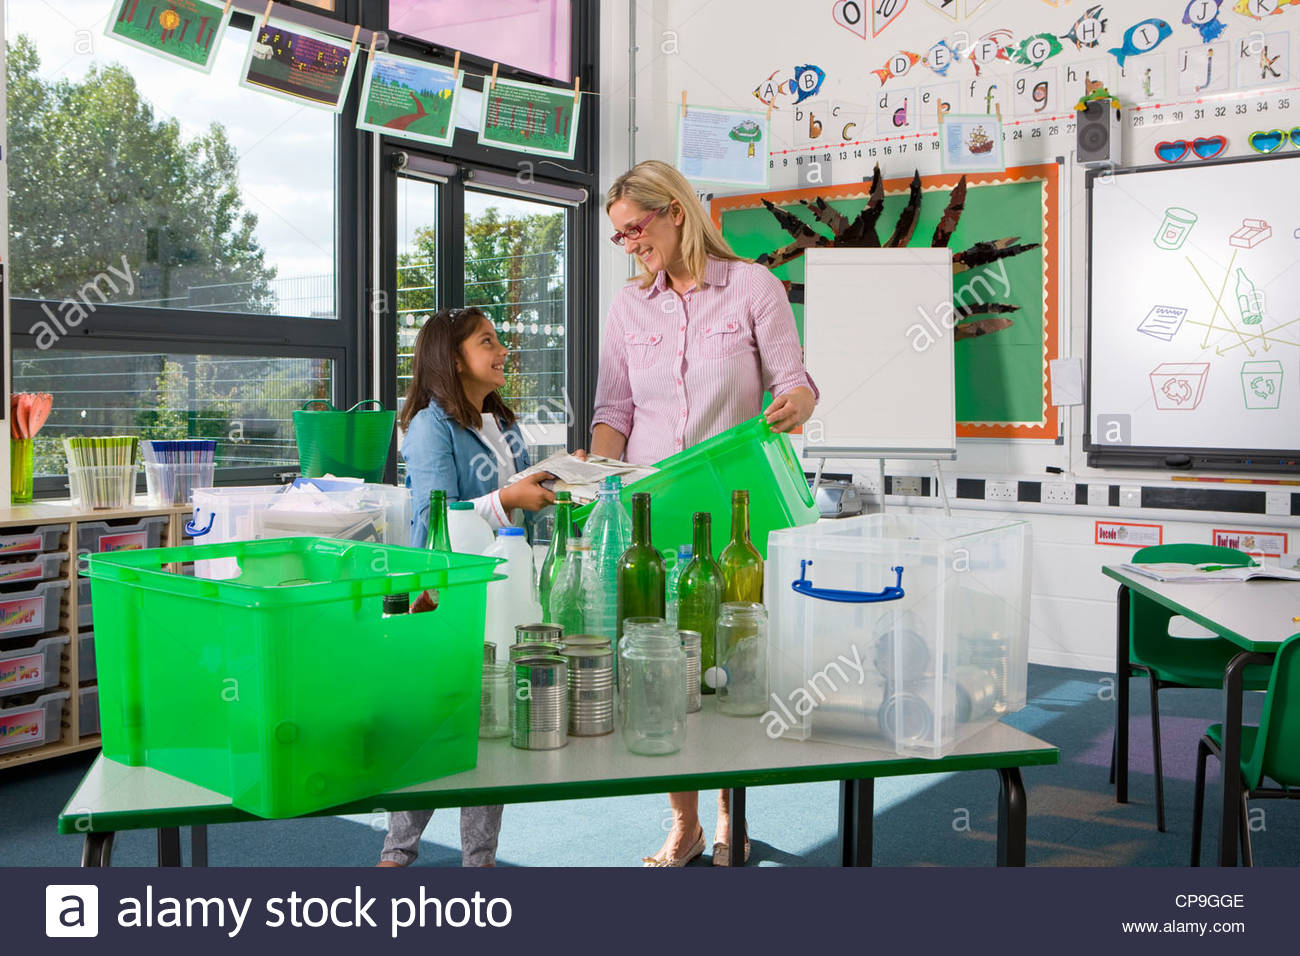 Teacher and student sorting recyclables together in classroom - Stock Image